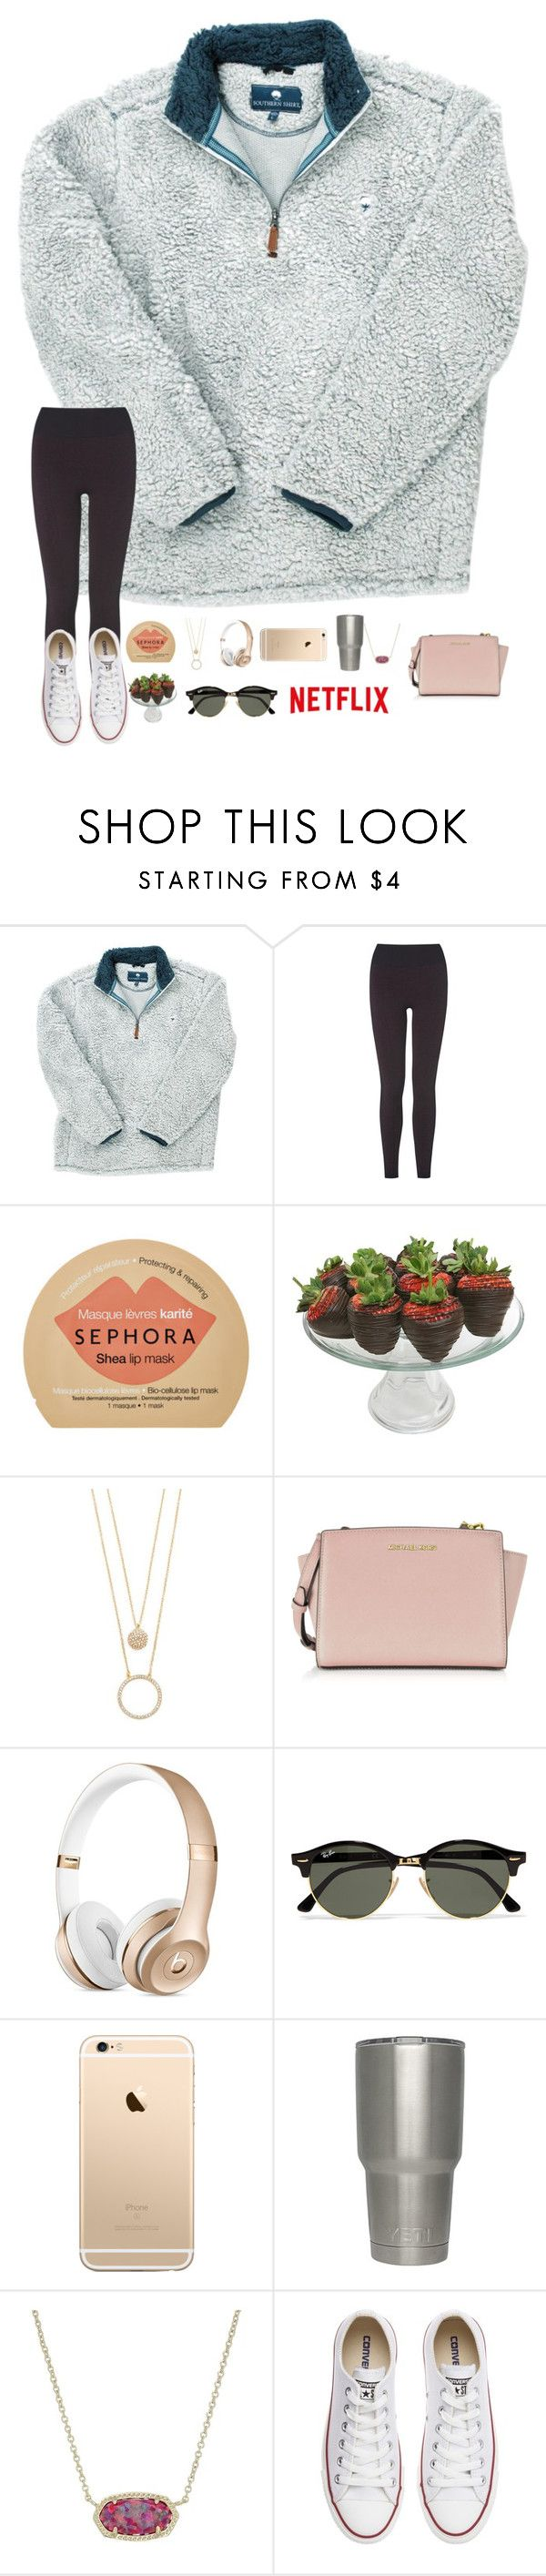 """""""•RTD for details!•"""" by mackenzielacy814 ❤ liked on Polyvore featuring L.K.Bennett, Sephora Collection, Golden Edibles, Kate Spade, Michael Kors, Ray-Ban, Kendra Scott and Converse"""